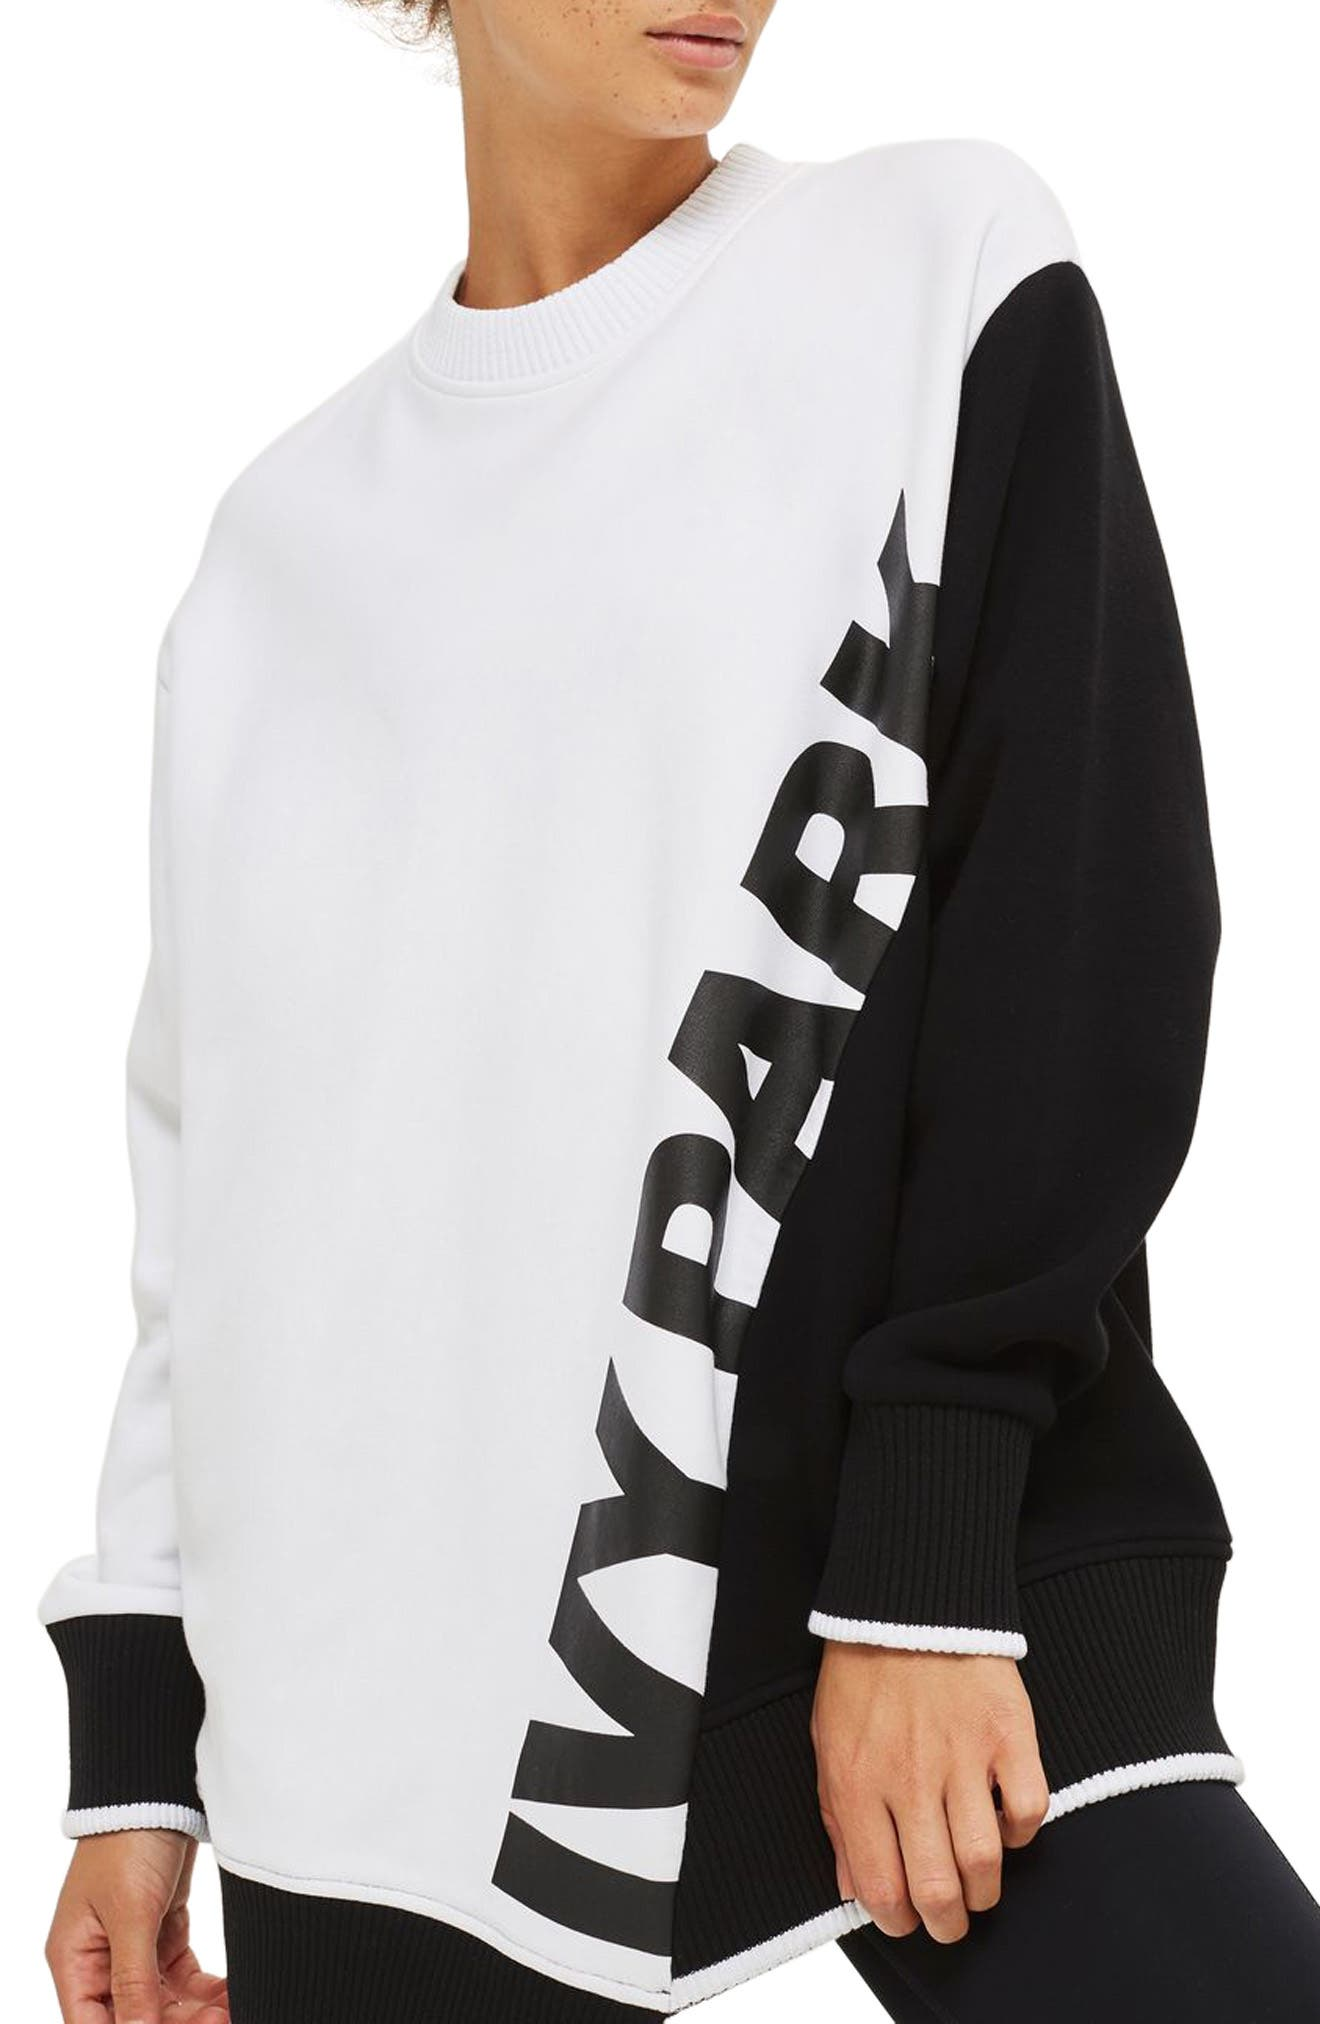 Alternate Image 1 Selected - IVY PARK® Asymmetrical Logo Sweatshirt